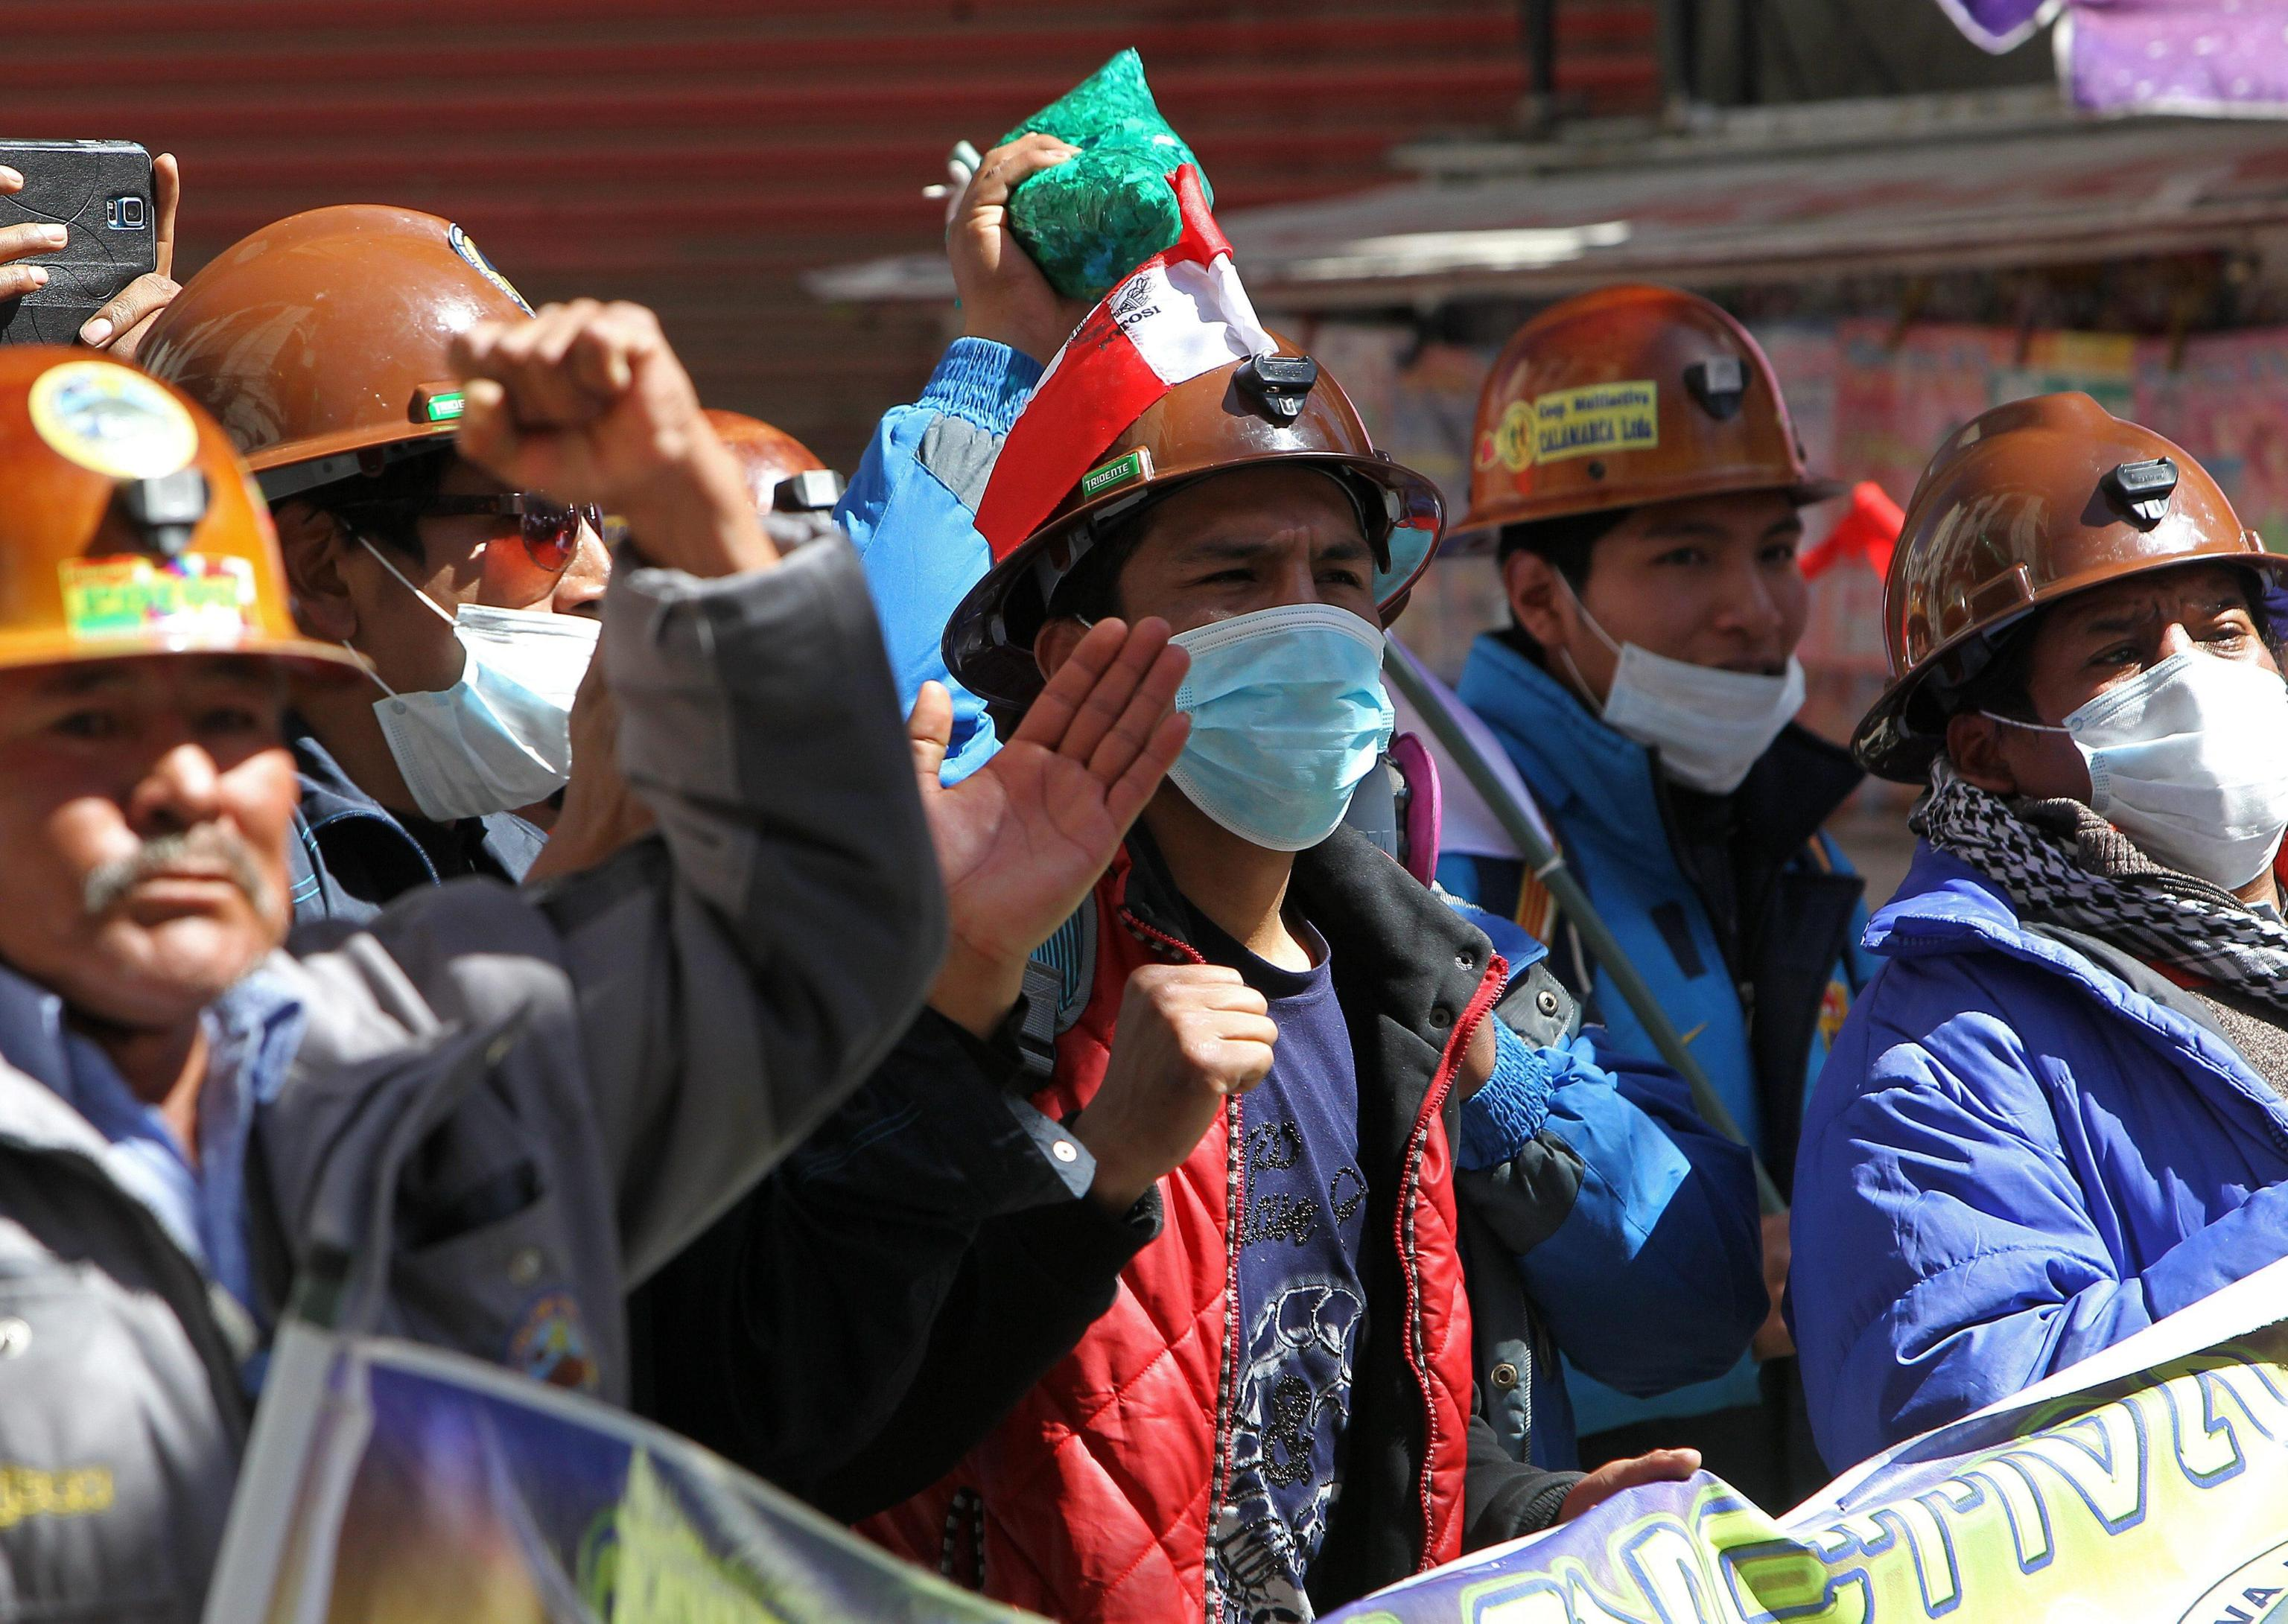 Thousands of miners shout slogans during a protest at Murillo square